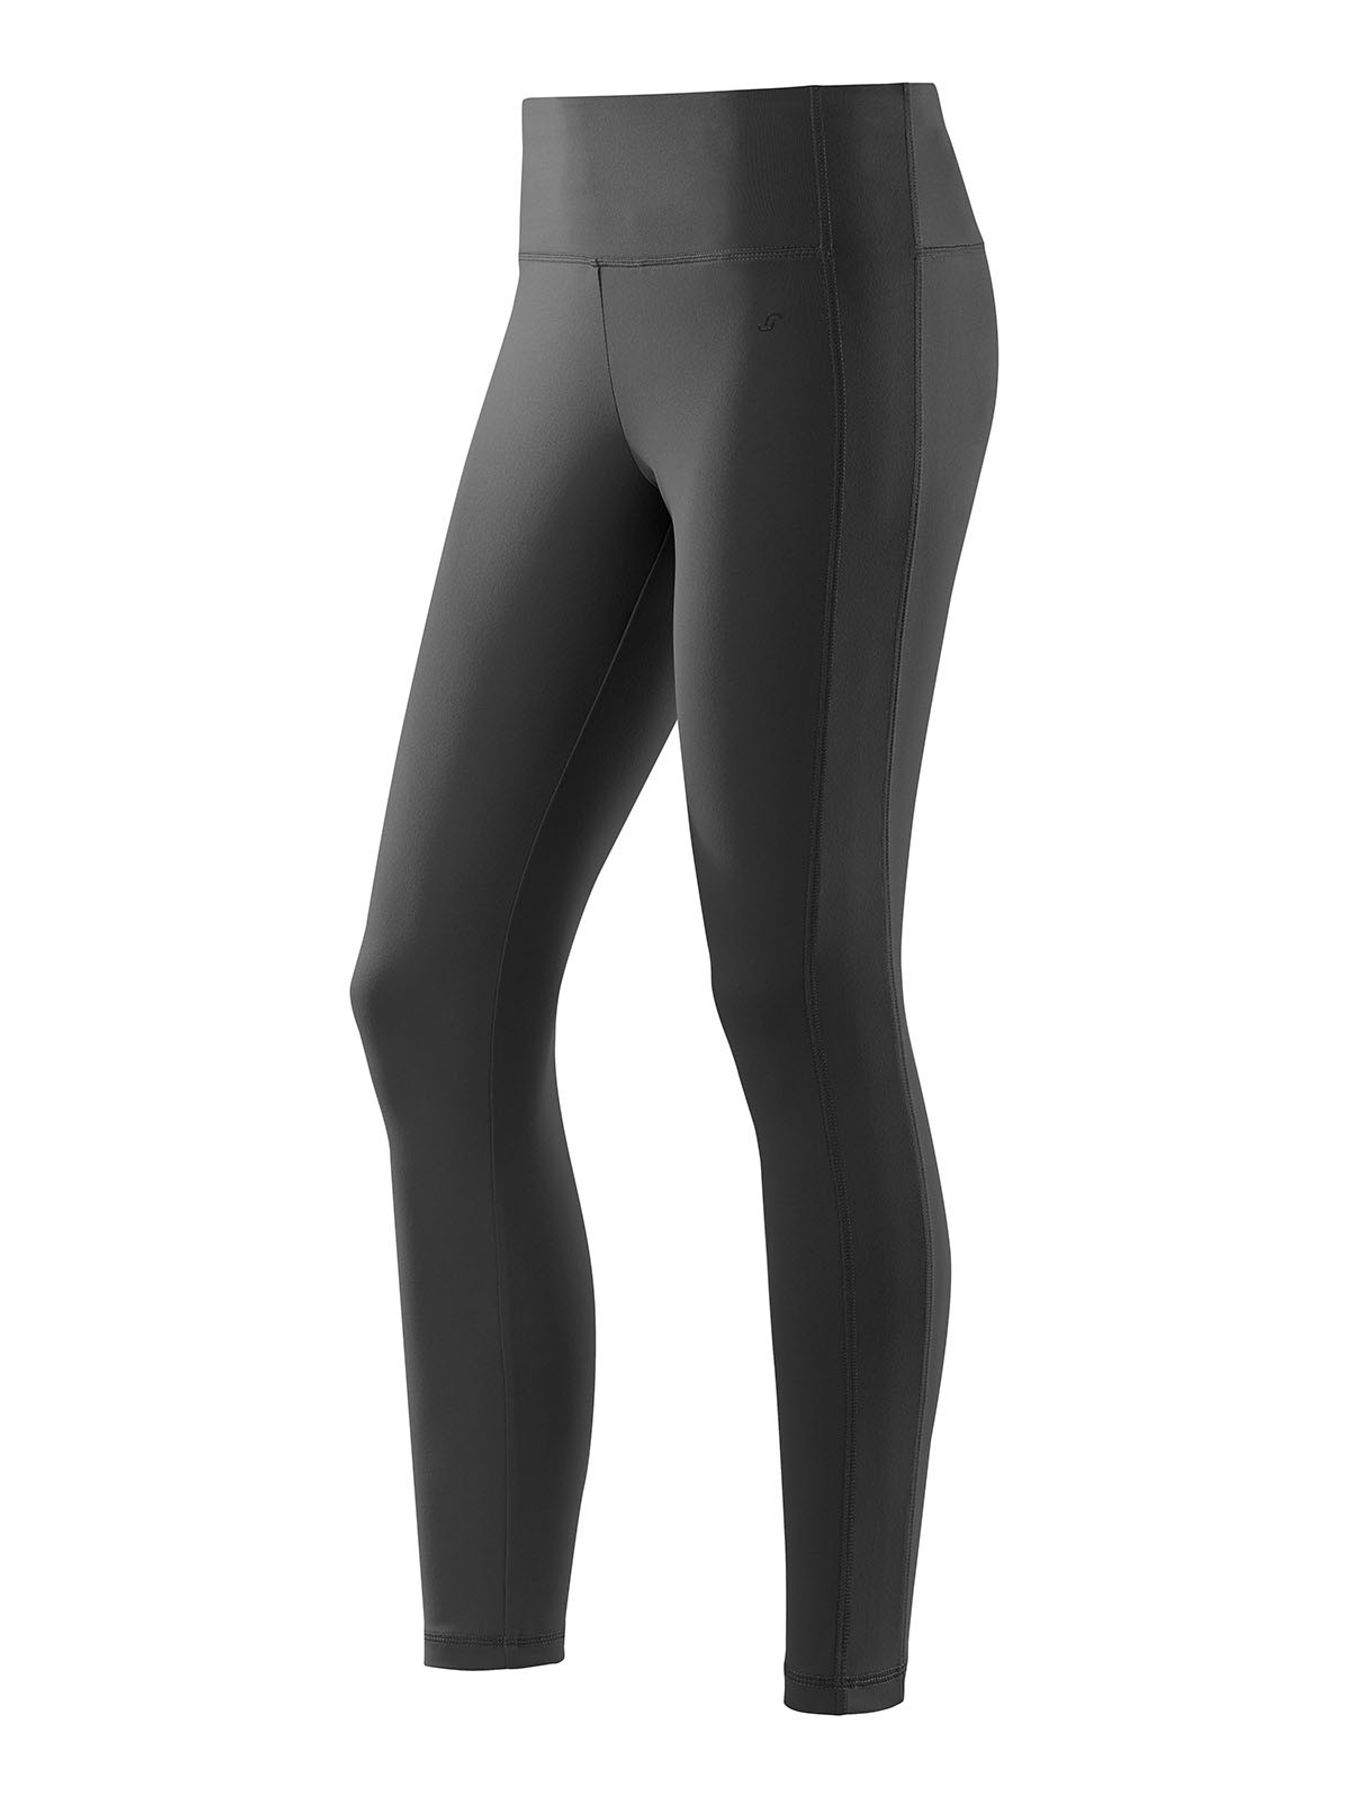 Joy - Bodyfit - Damen Sport Hose mit Shaping-Effekt, Michella (30141)